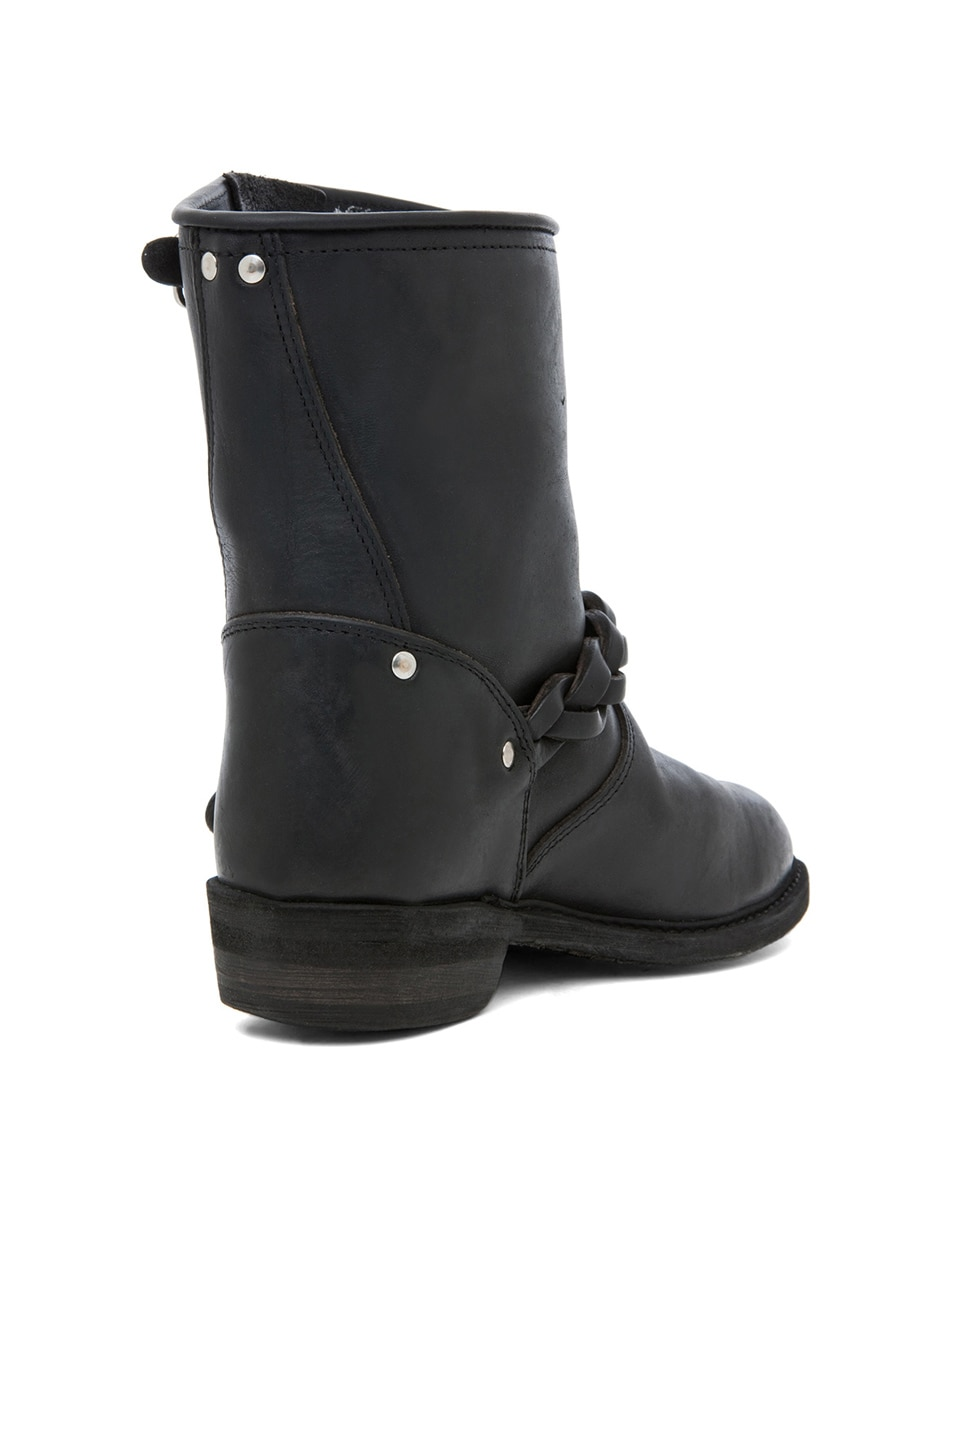 Image 3 of Golden Goose Leather Short Biker Boots in Black Stud